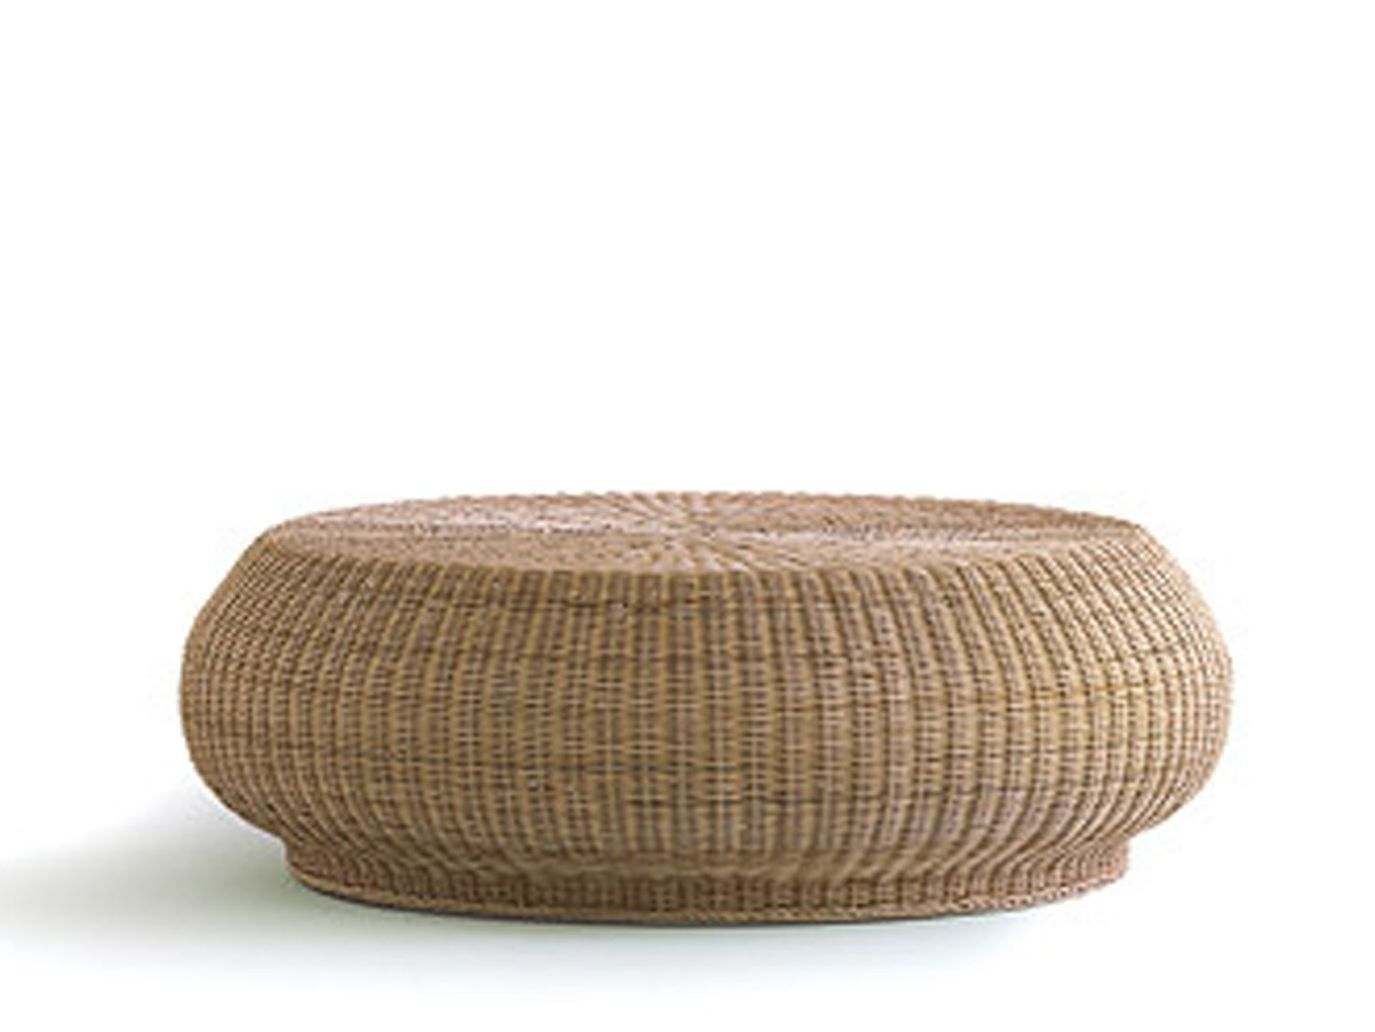 Low round woven wicker coffee table bolla 15 bolla collection by low round woven wicker coffee table bolla 15 bolla collection by gervasoni design michael sodeau geotapseo Gallery